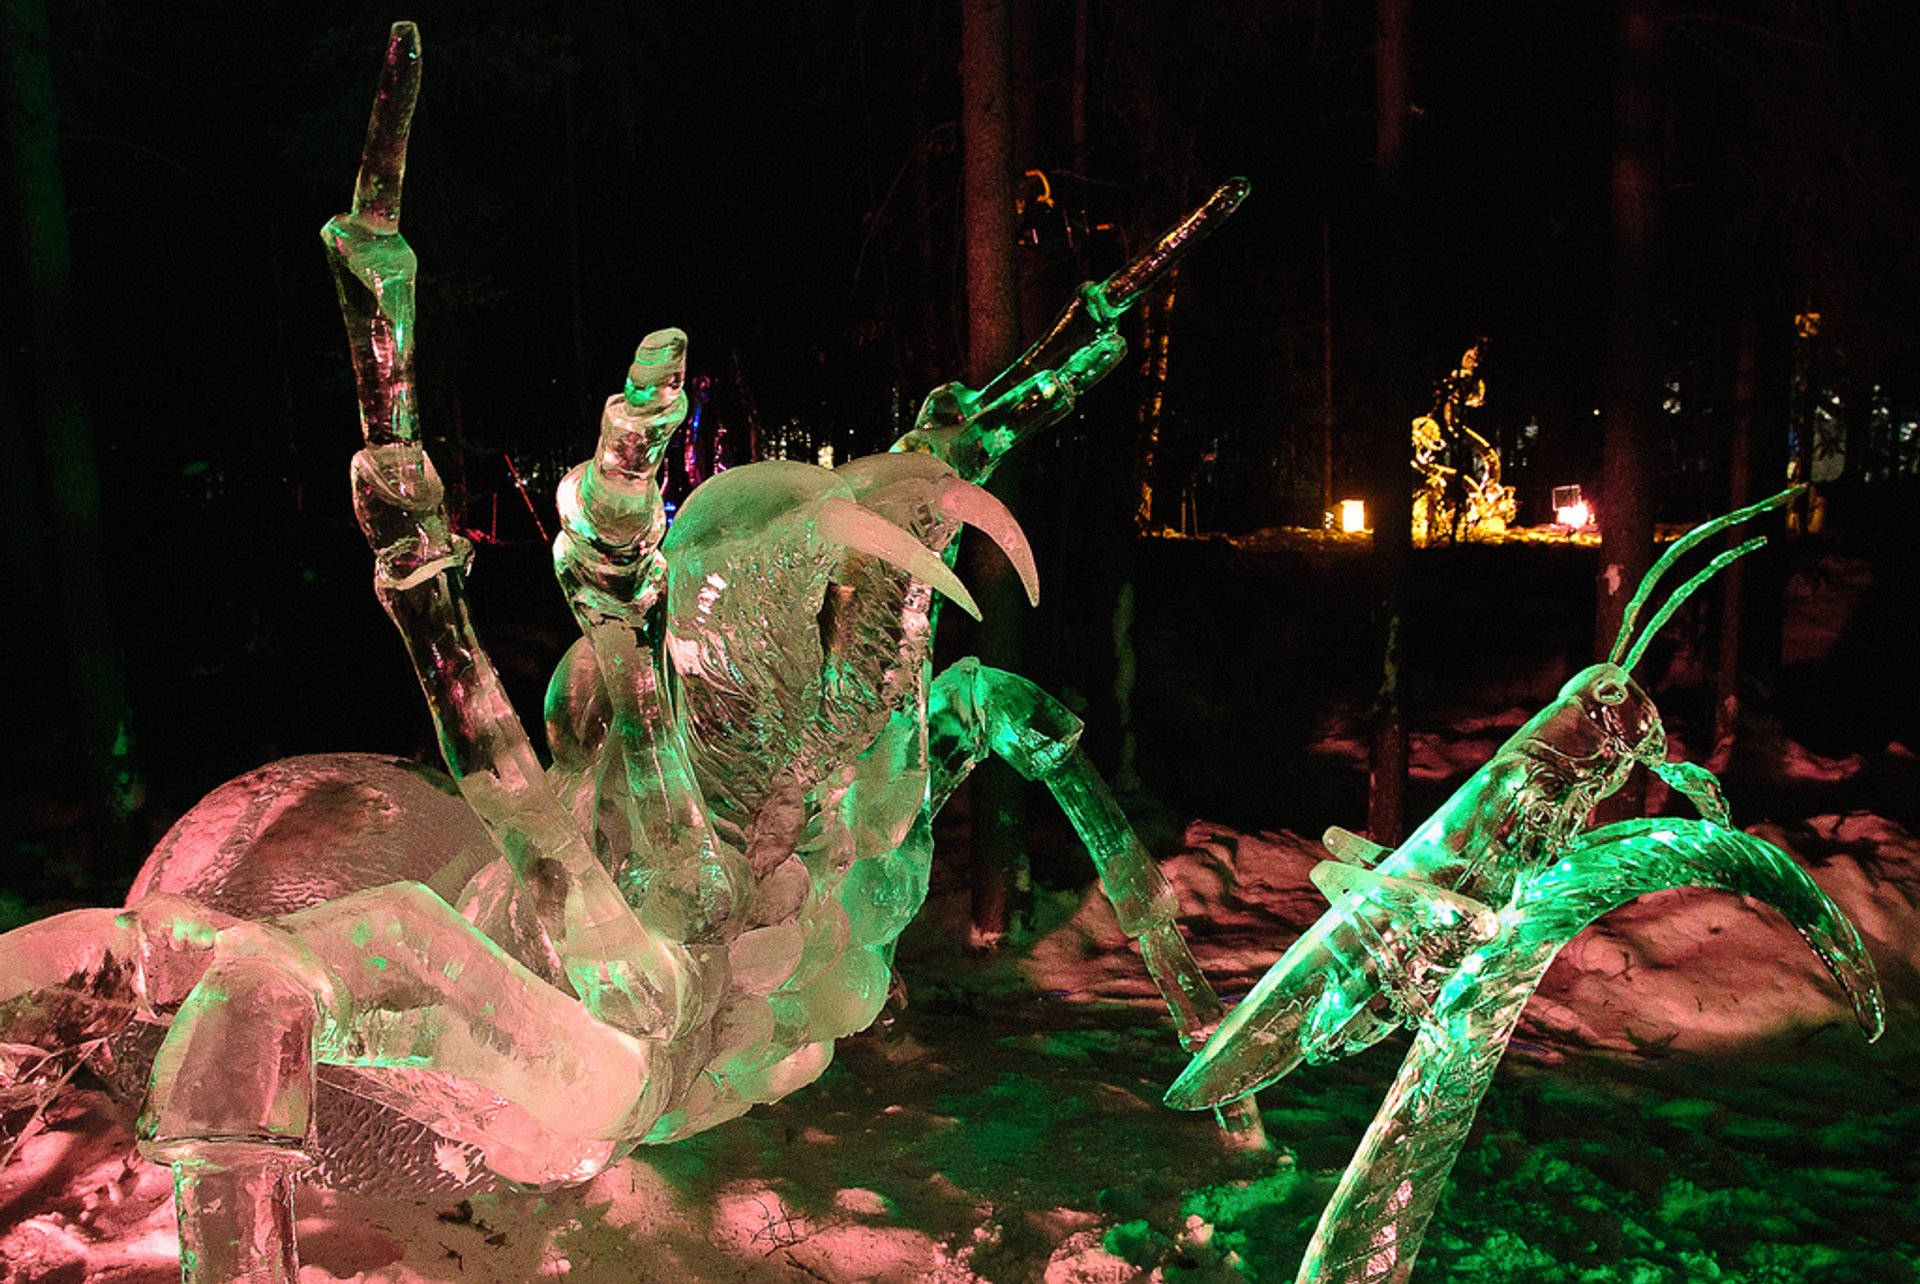 Wo​rld Ice Art Championships in Alaska - Best Season 2020